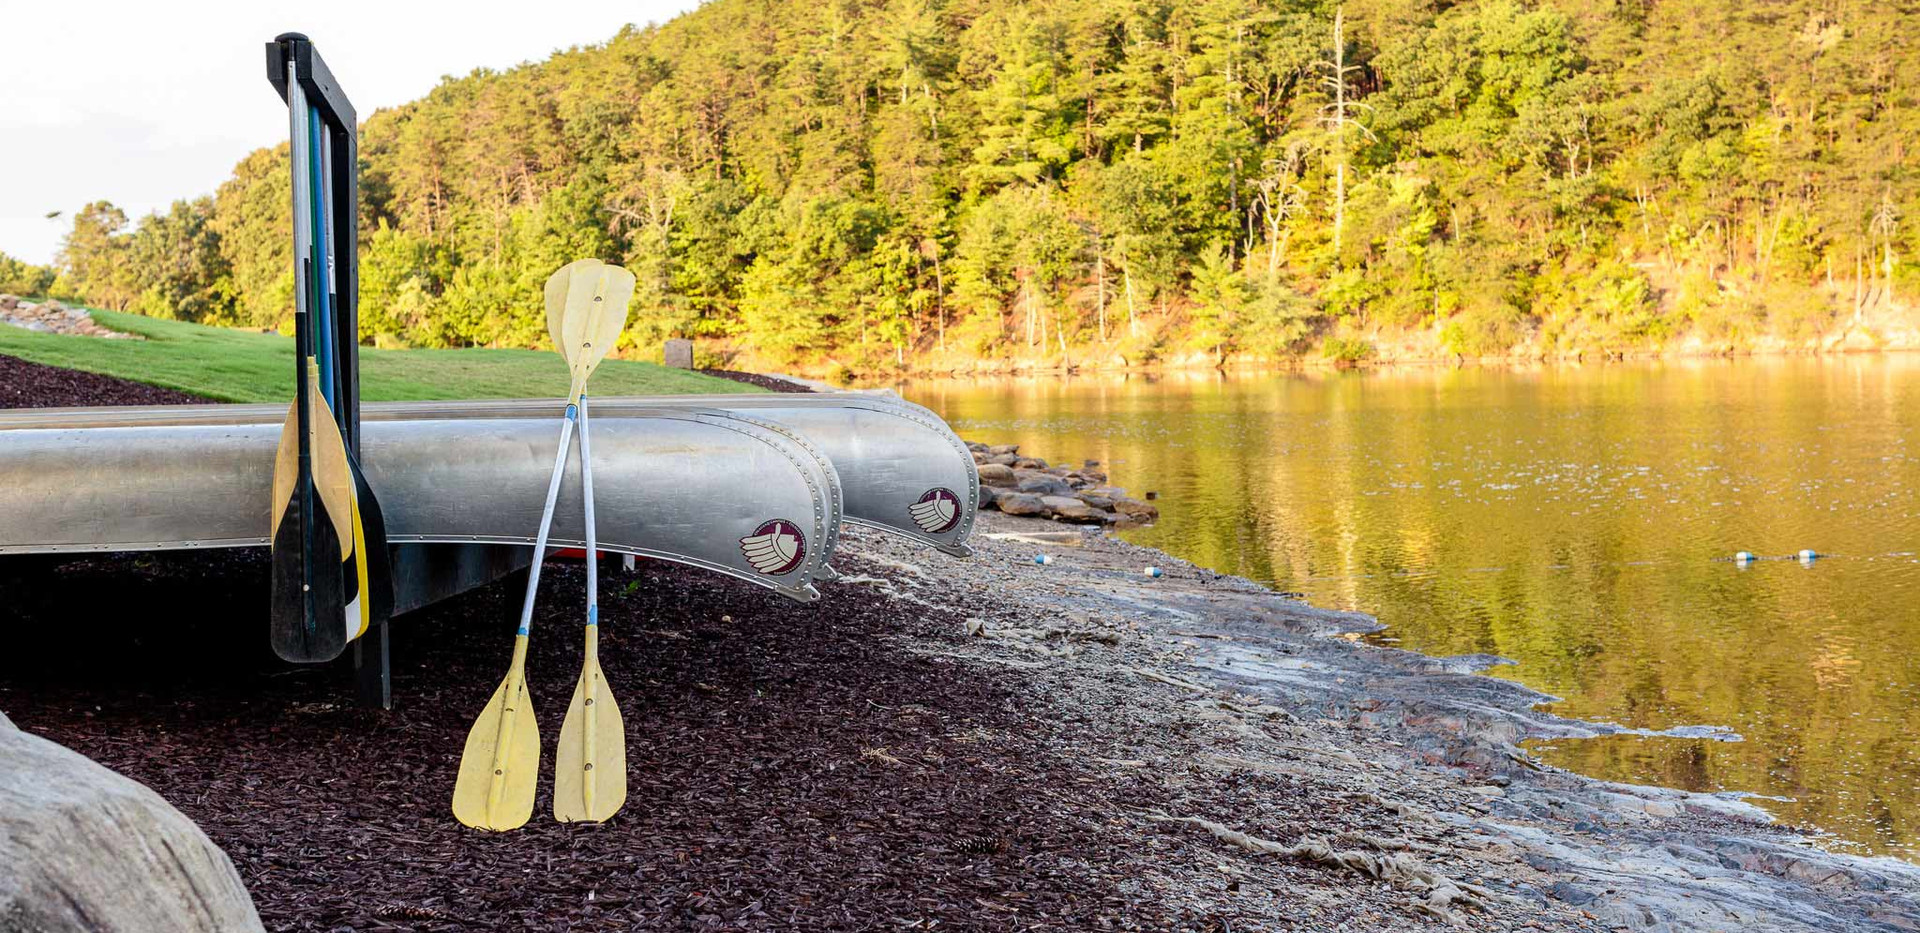 Canoe's free to use for this event - Enchanted DIY RE-TREAT 2020